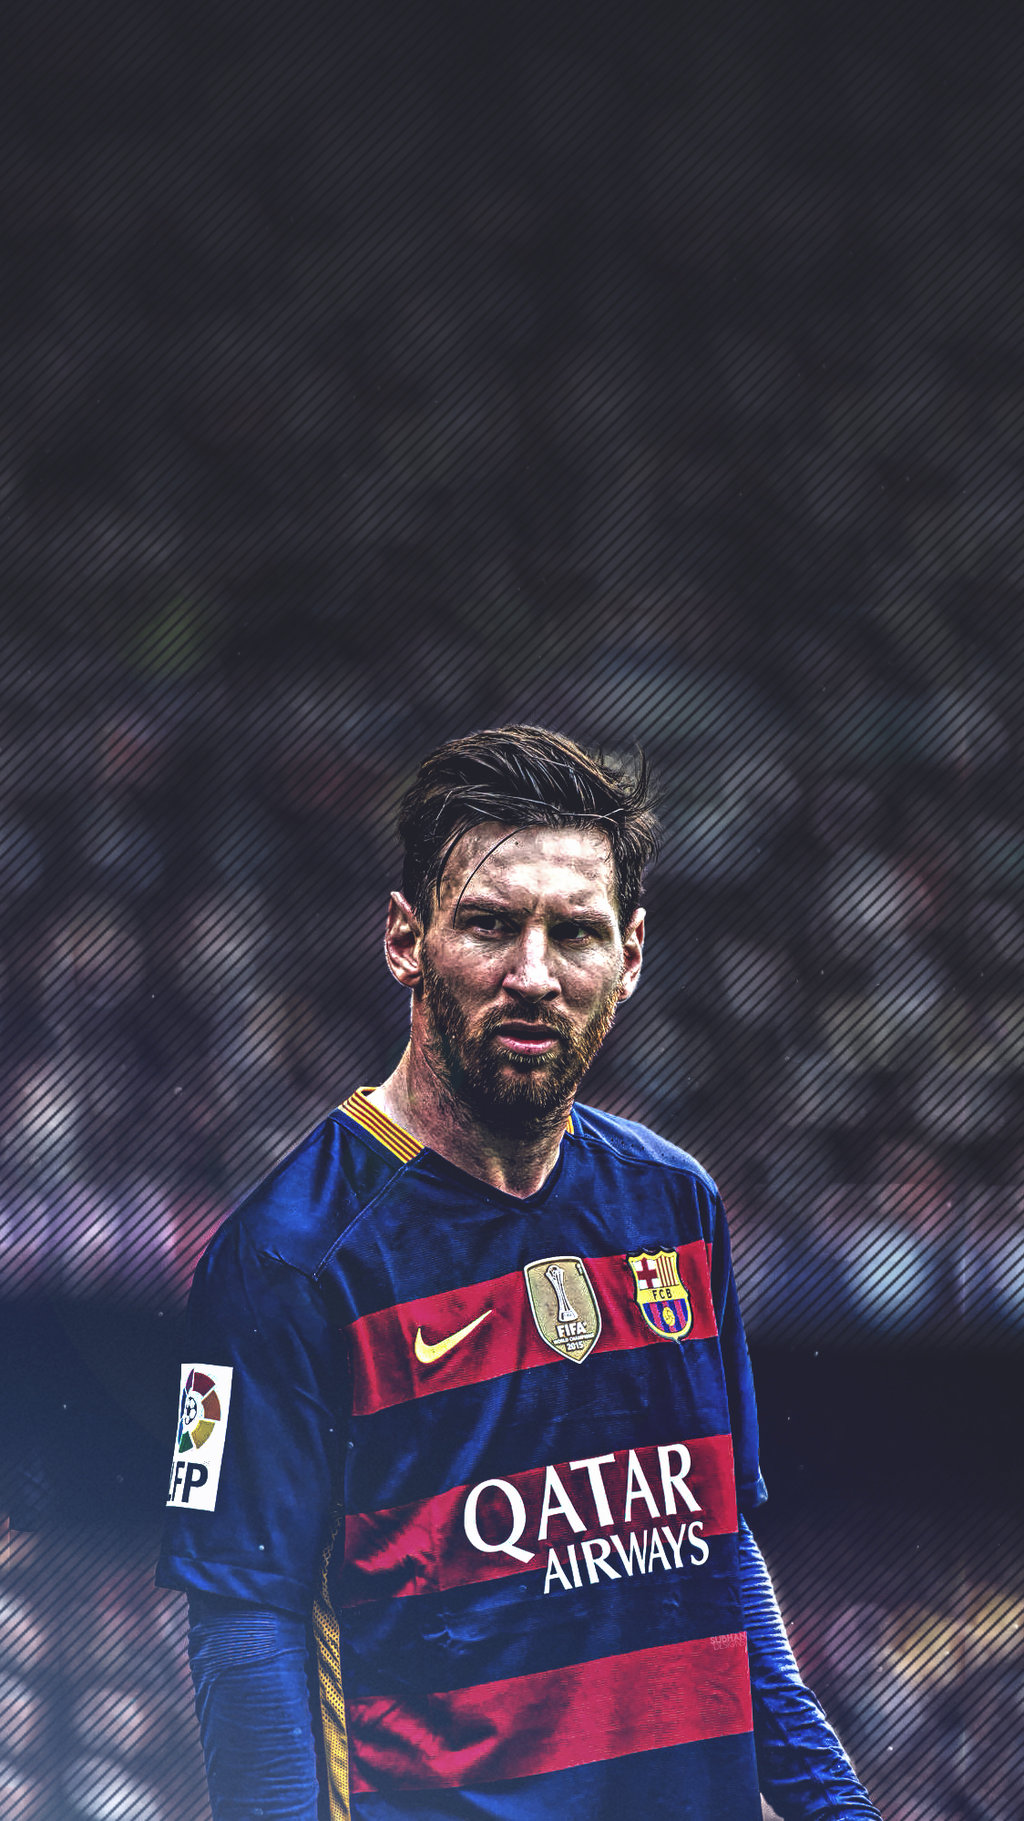 Lionel Messi Beard Mobile wallpaper 2016 by subhan22 on 1024x1821